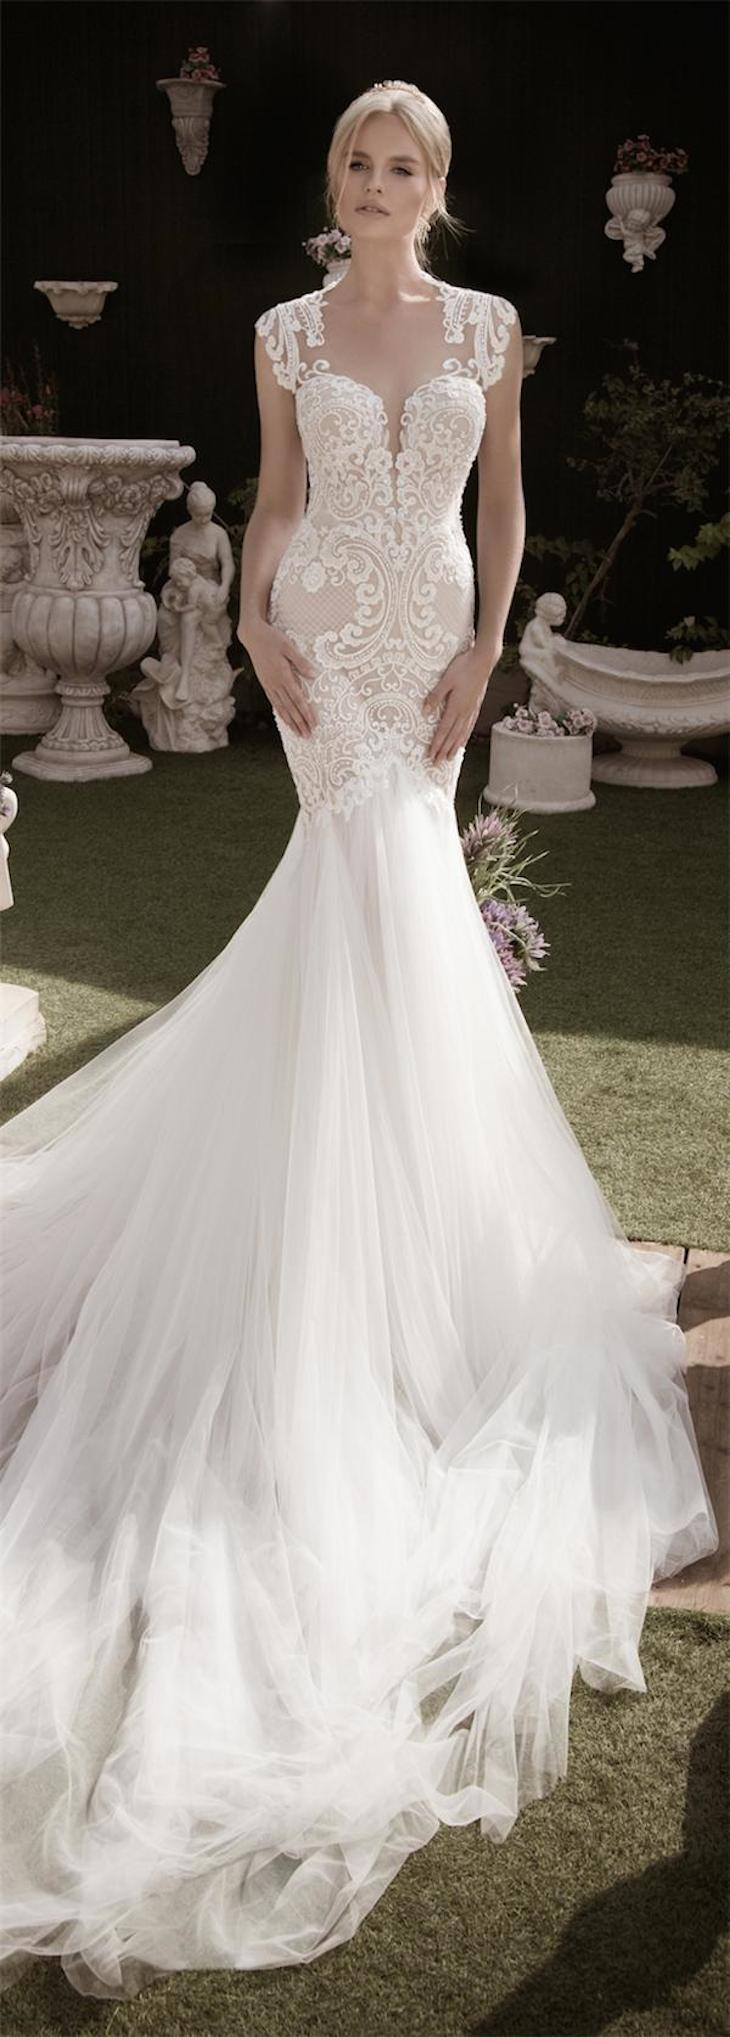 Top 10 Popular Wedding Dresses for 2016 - Top Inspired